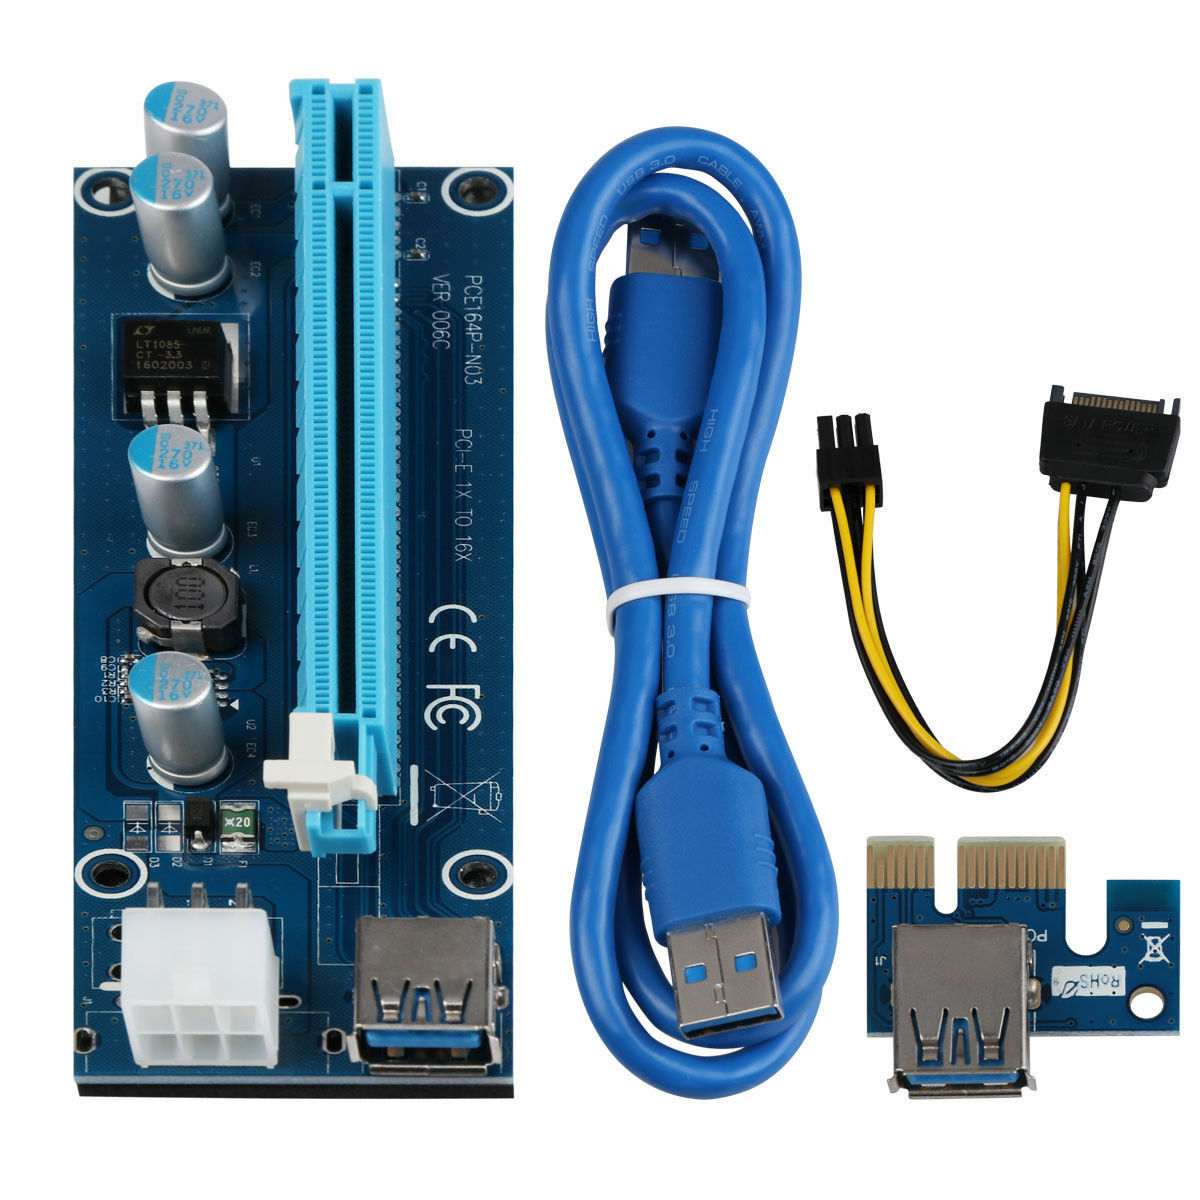 Usb 30 Pcie Pci E Express 1x To 16x Extender Riser Card Adapter Vga Power Cable 1 Of 8 See More